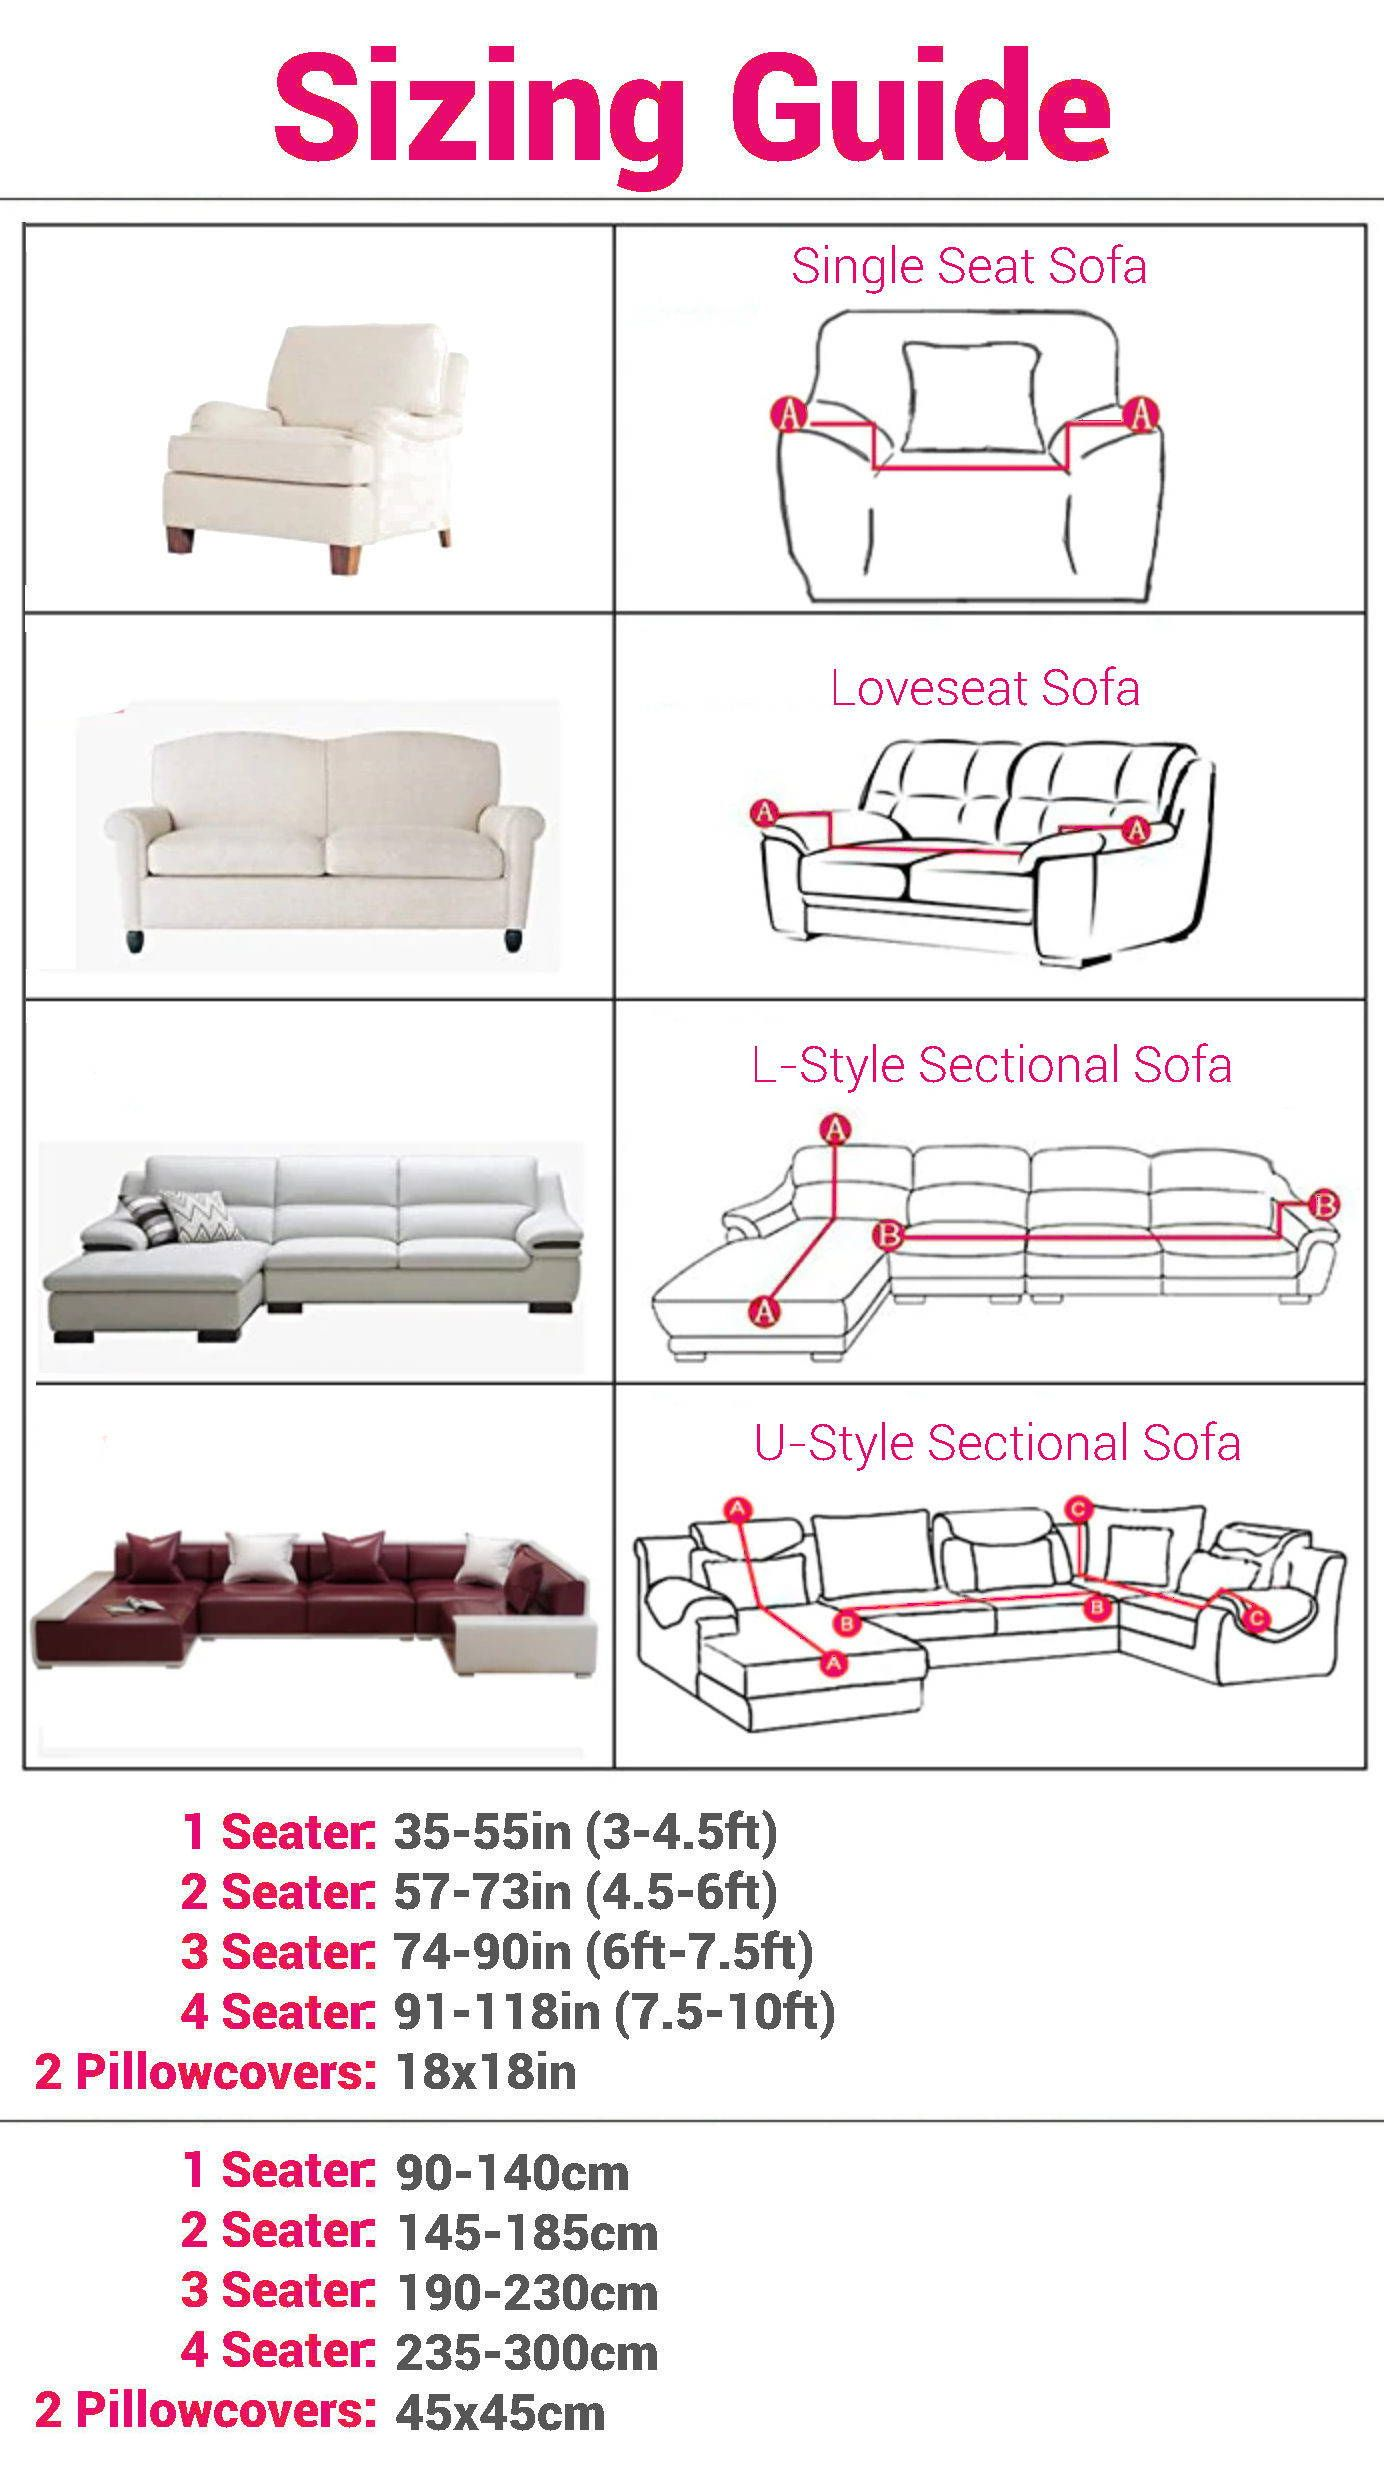 Solid Sofa Cover 1 Seater In 2020 Sofa Covers Inexpensive Home Decor Easy Home Decor